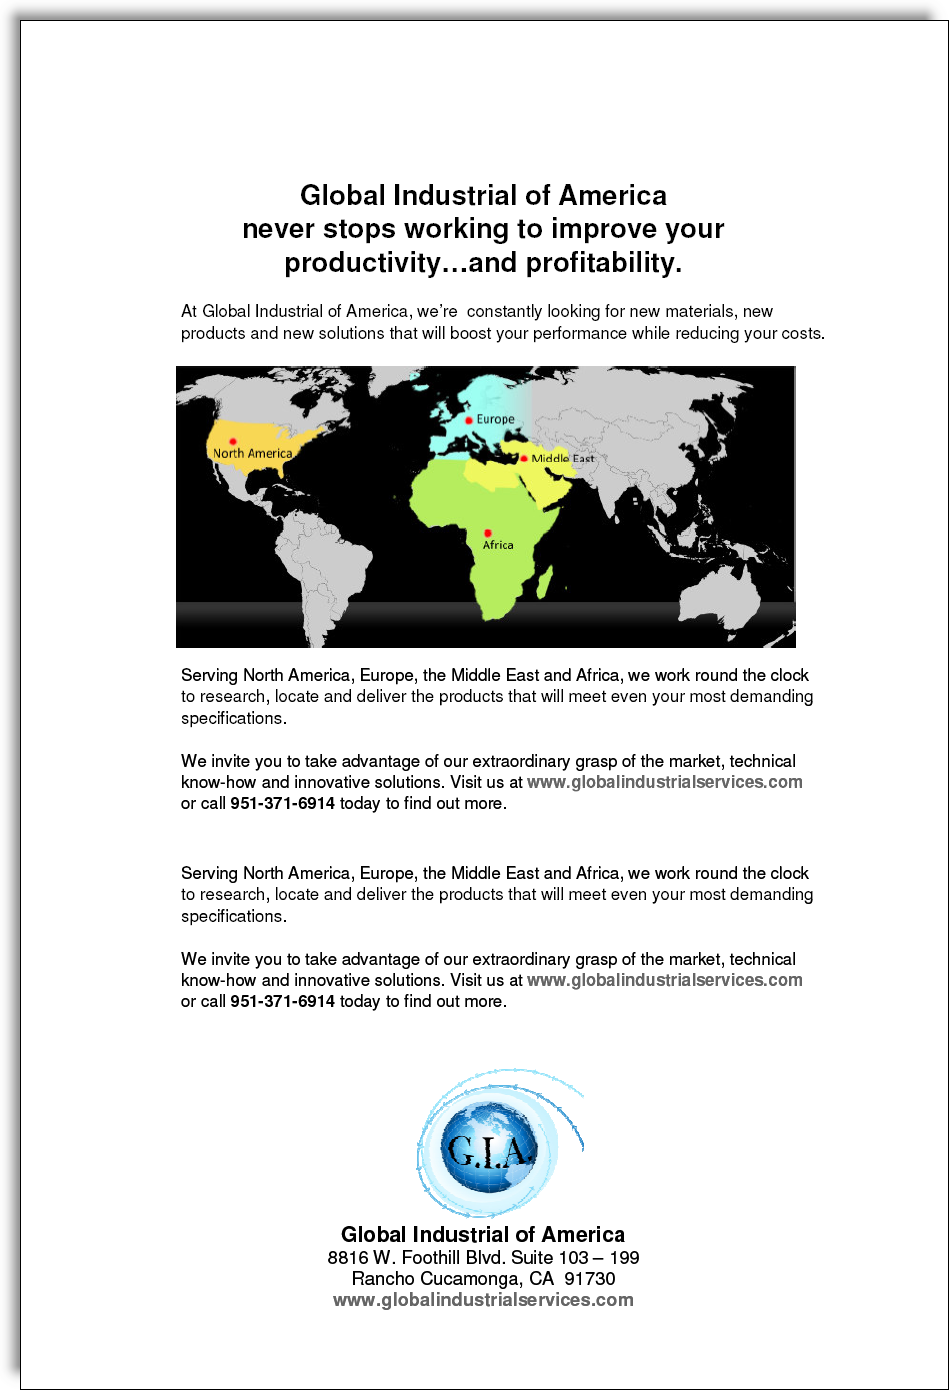 global-industrial-brochure-inside-5